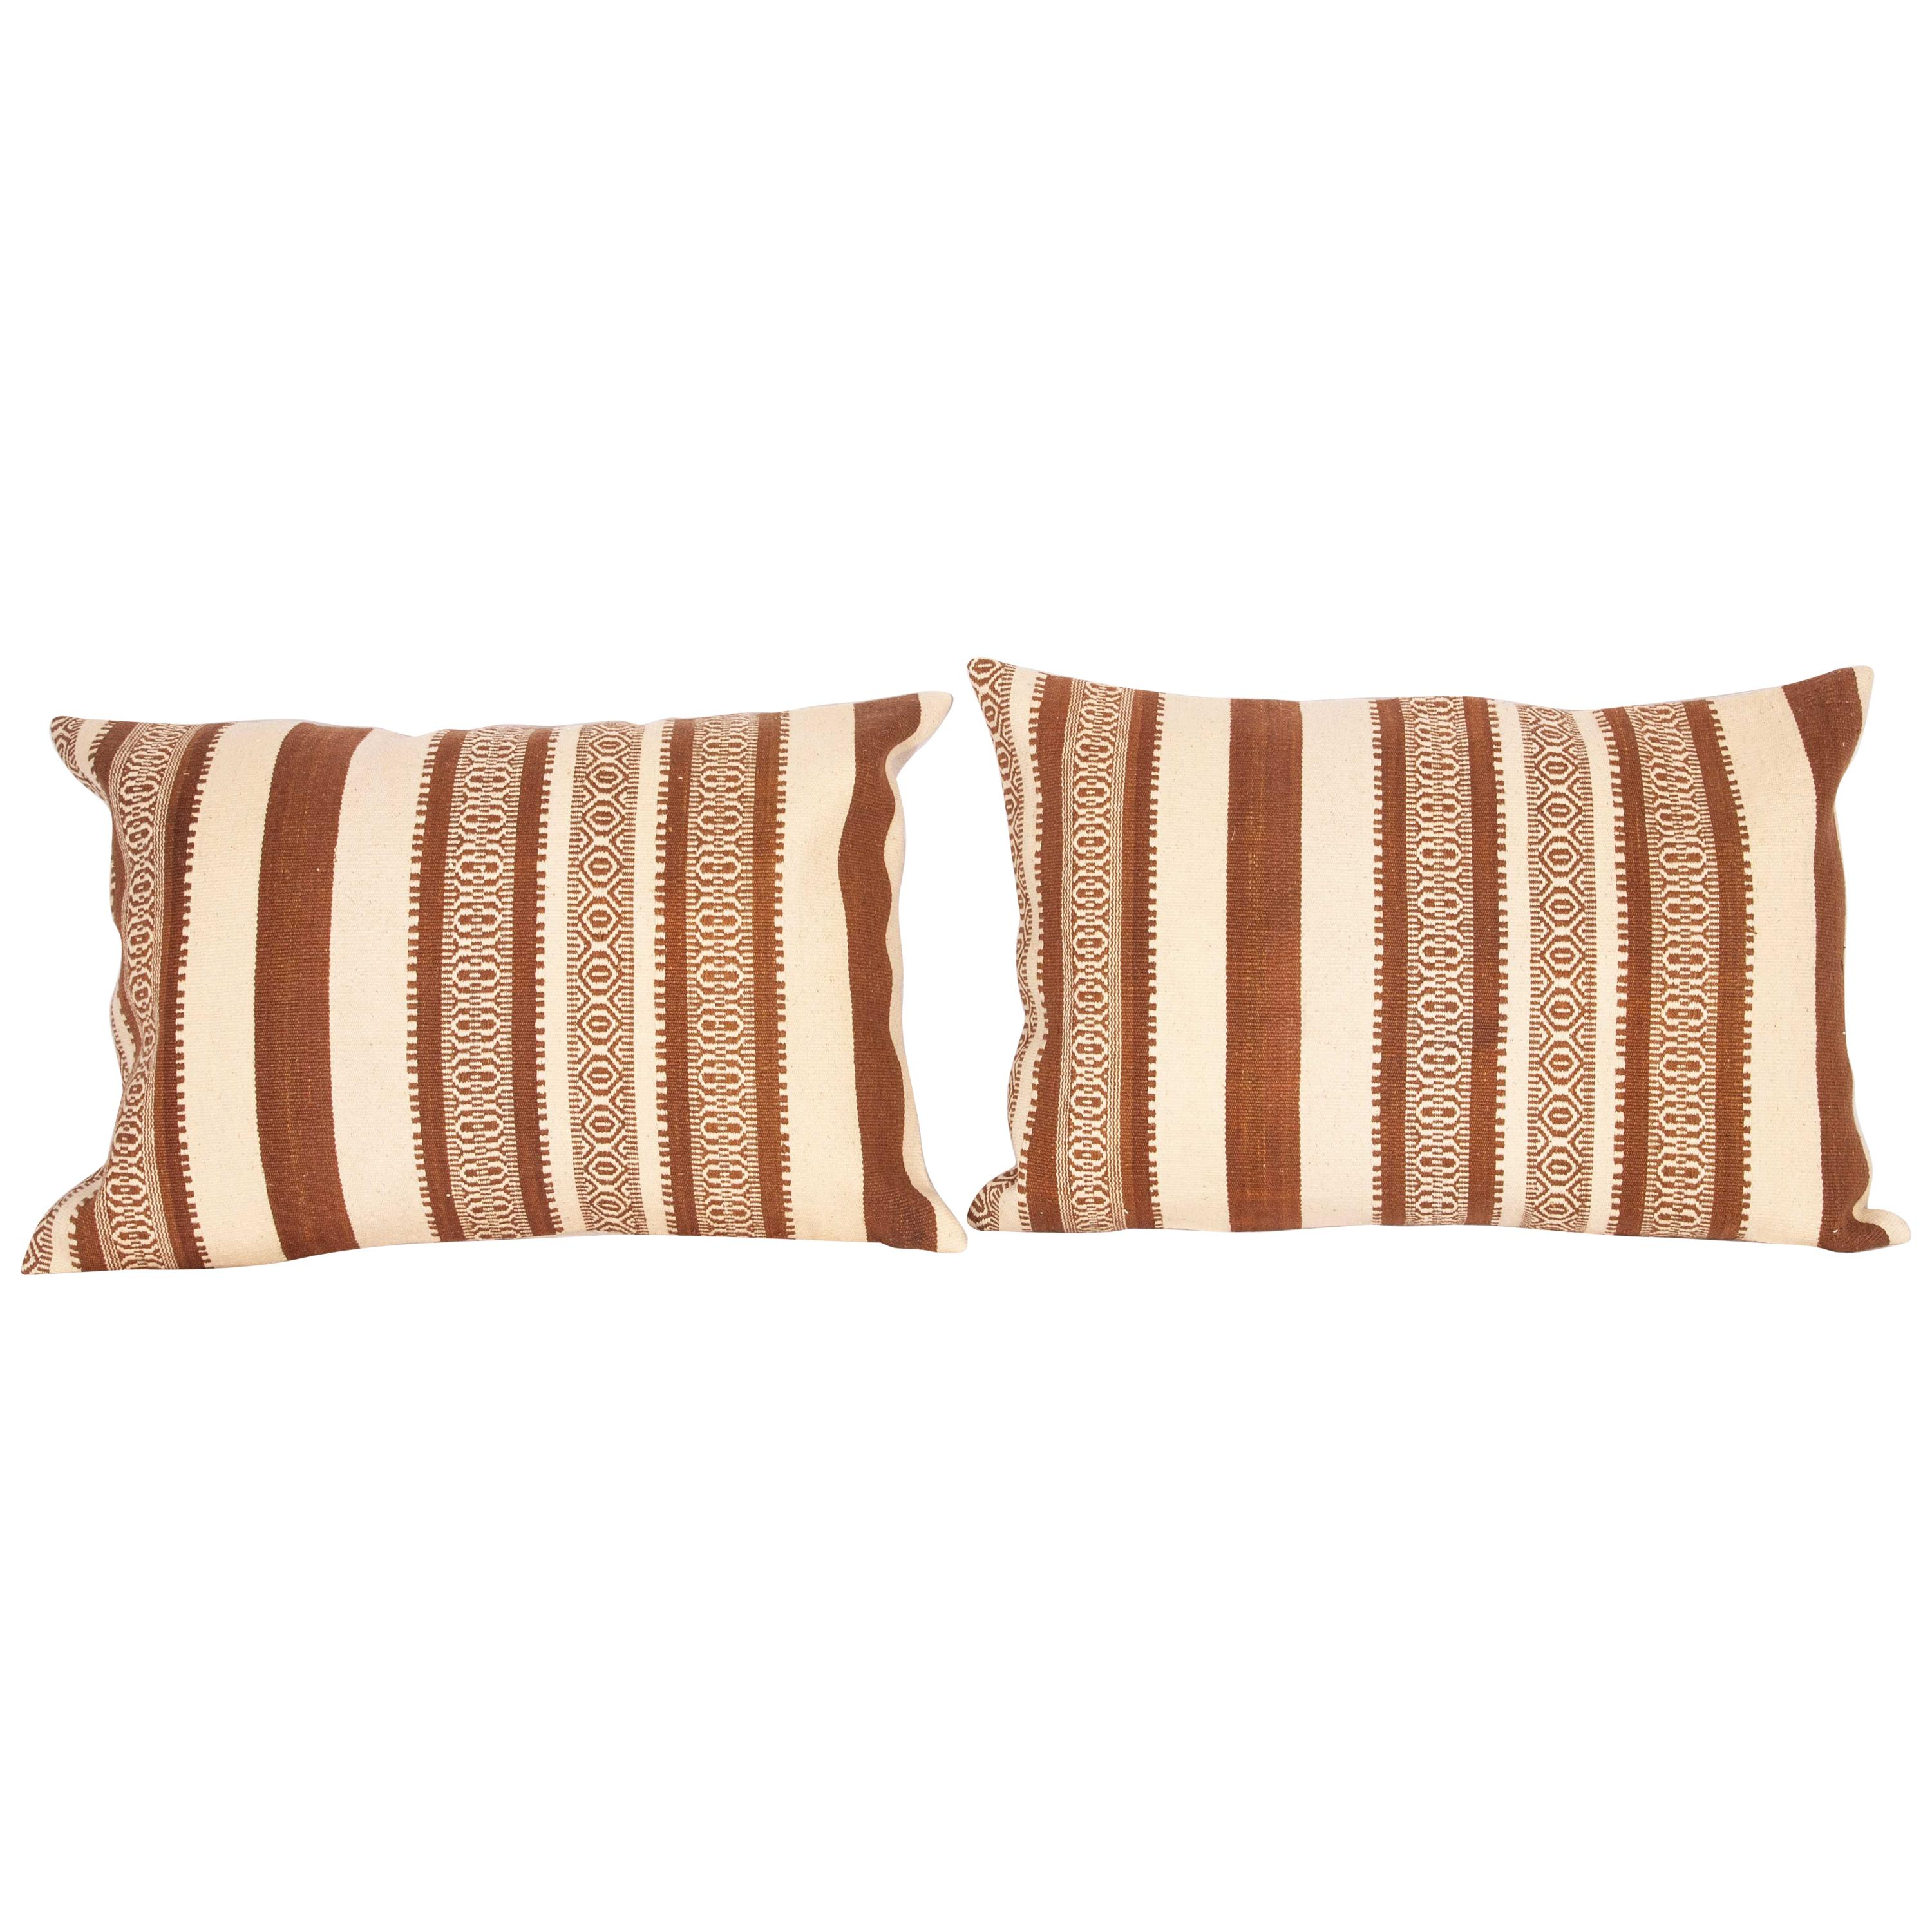 Old Kilim Pillow Cases Fashioned from a Vintage Anatolian Wool Kilim